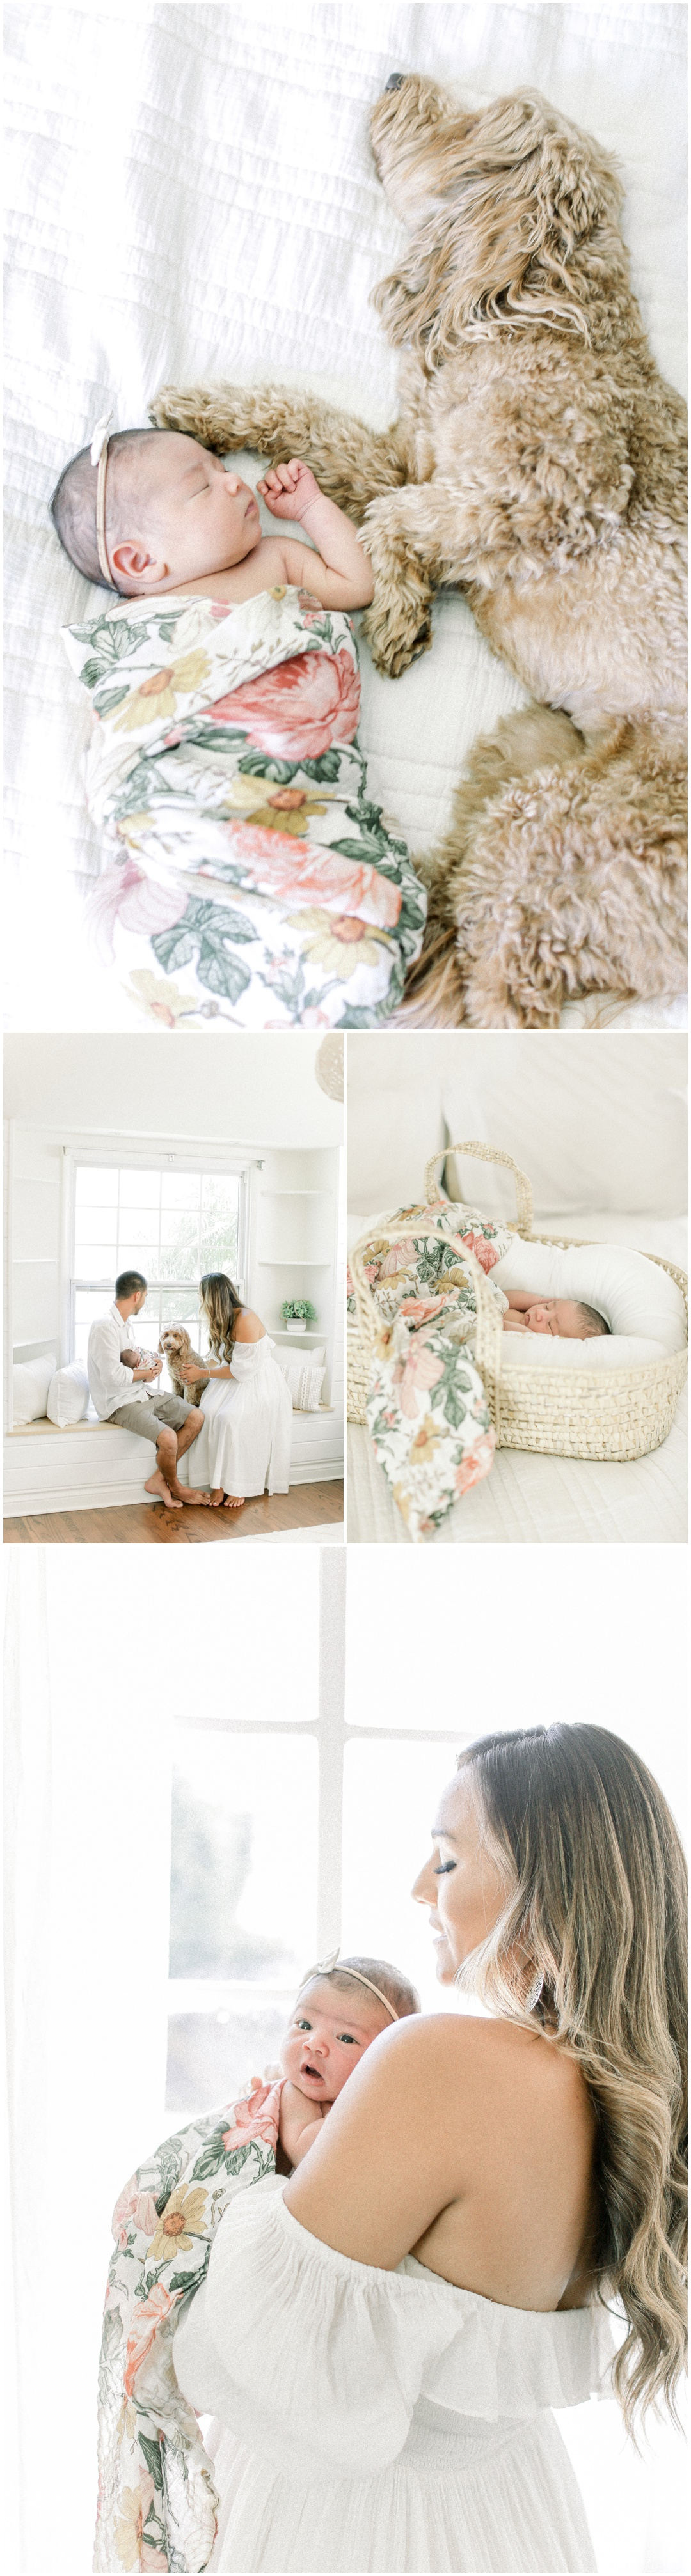 Newport_Beach_Newborn_Light_Airy_Natural_Photographer_Newport_Beach_Photographer_Orange_County_Family_Photographer_Cori_Kleckner_Photography_Newport_Beach_Newborn_Photographer_Taylor_Colacion_Family__4246.jpg